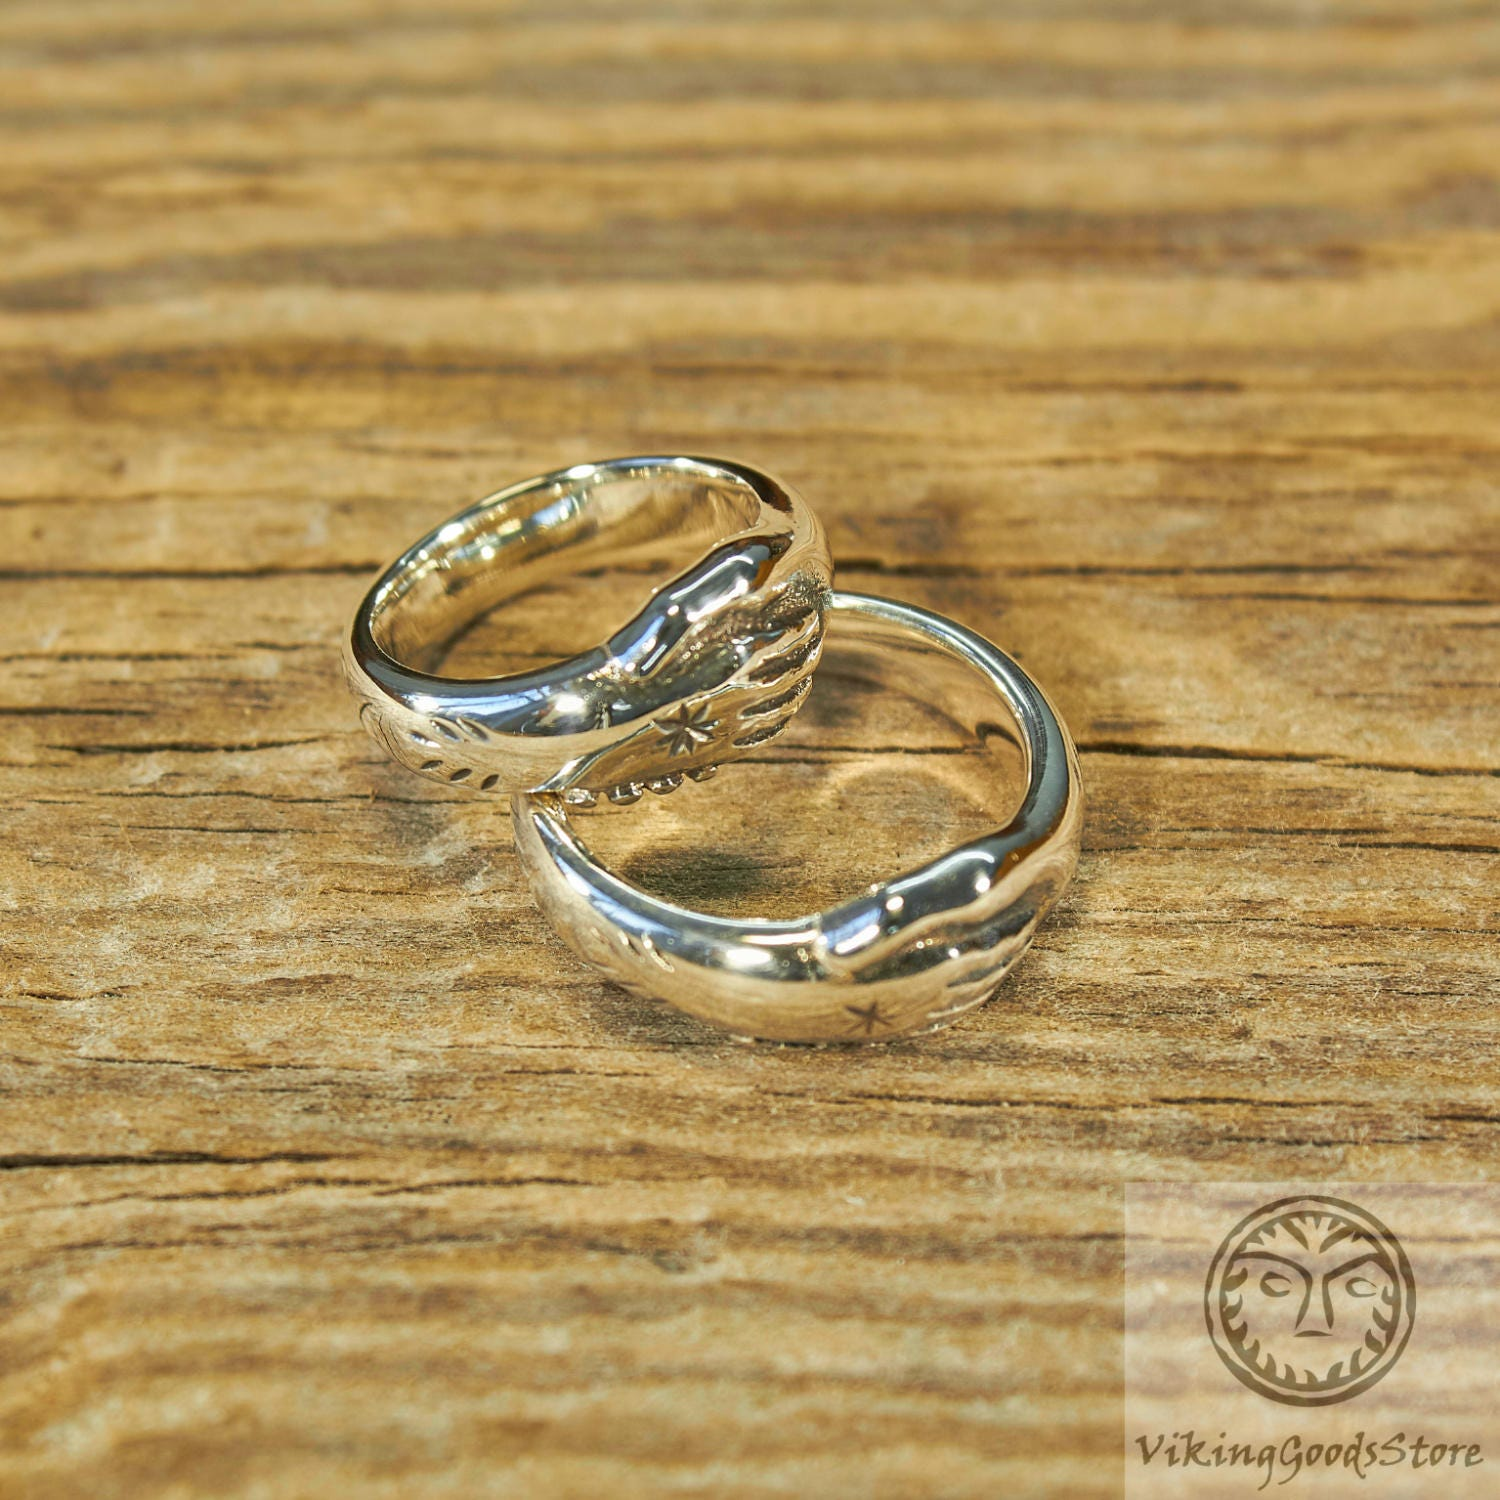 Roman Ring Wedding Clasped Hands Ancient Magic